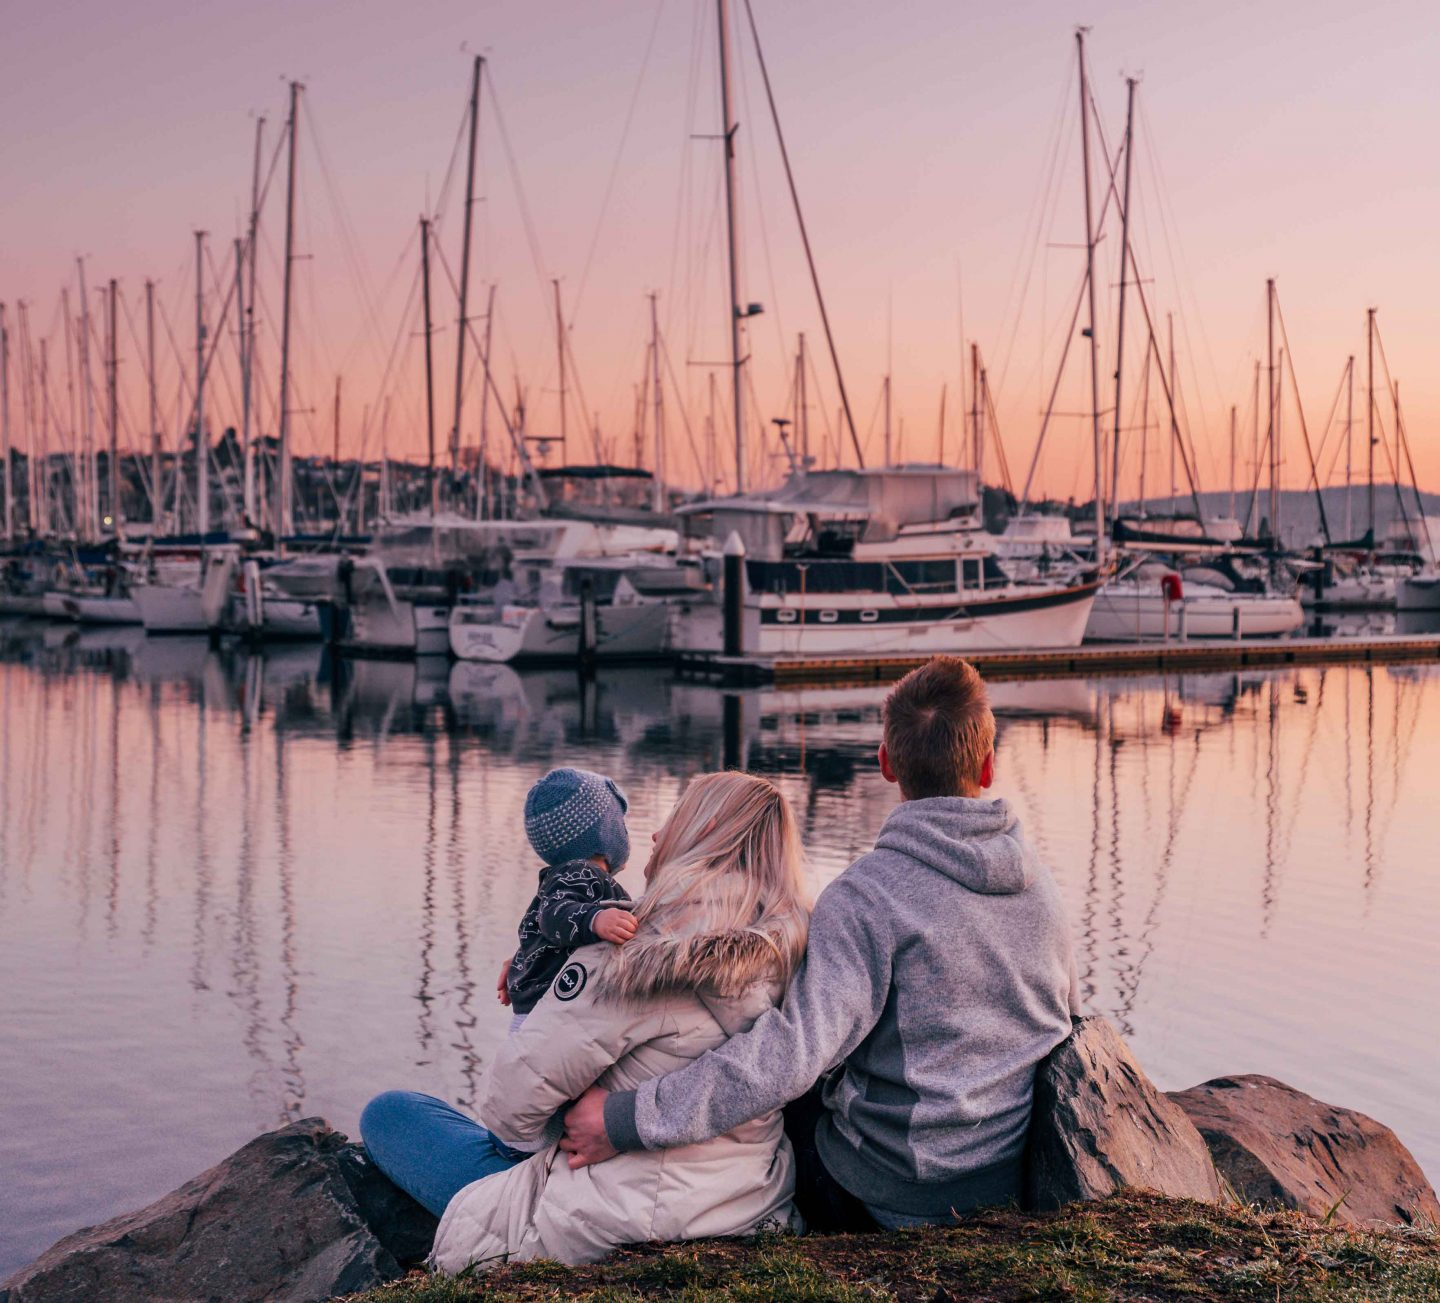 Derwent Sailing Squadron Marina - Instagrammable Spots in Tasmania - Live Life and Roam